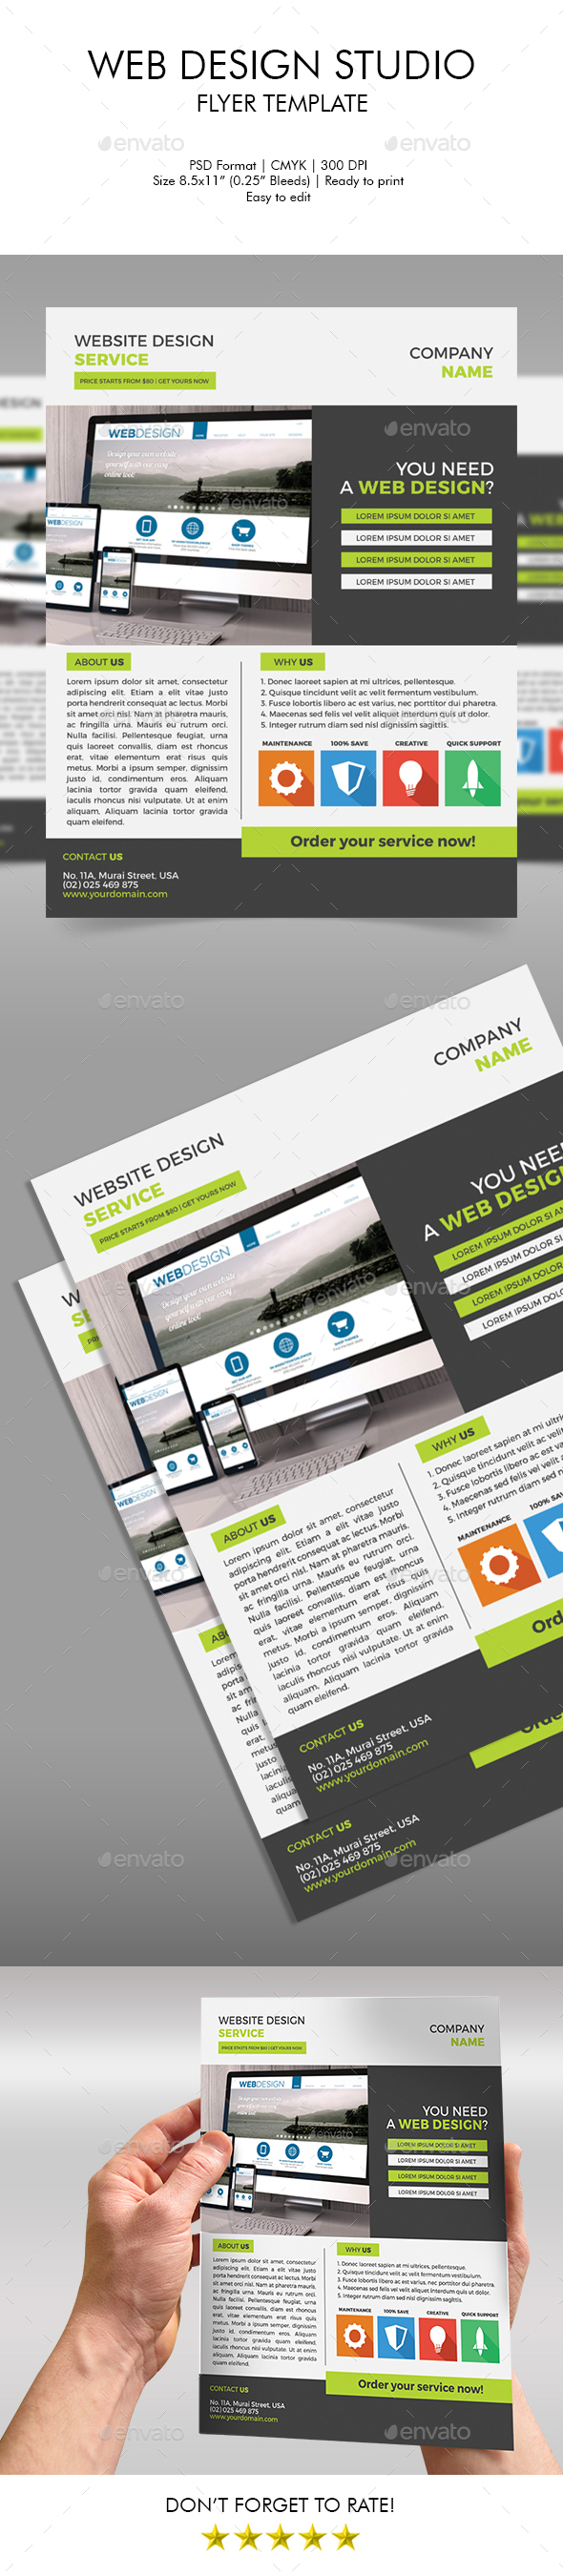 Web Design Studio Flyer Template - Corporate Flyers